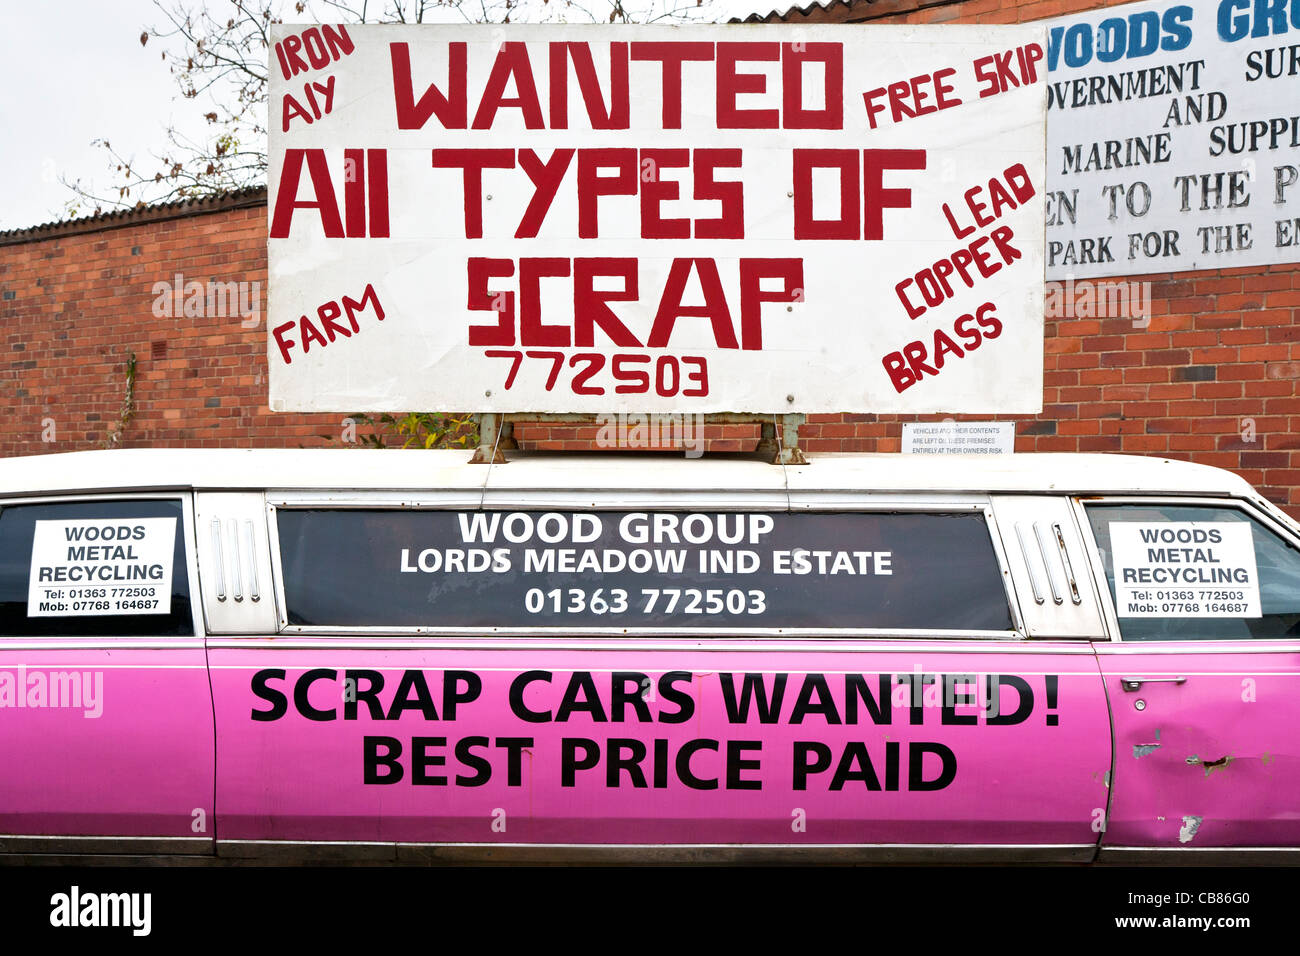 Scrap dealer with sign saying 'scrap cars wanted' on side of pink Cadillac - Stock Image